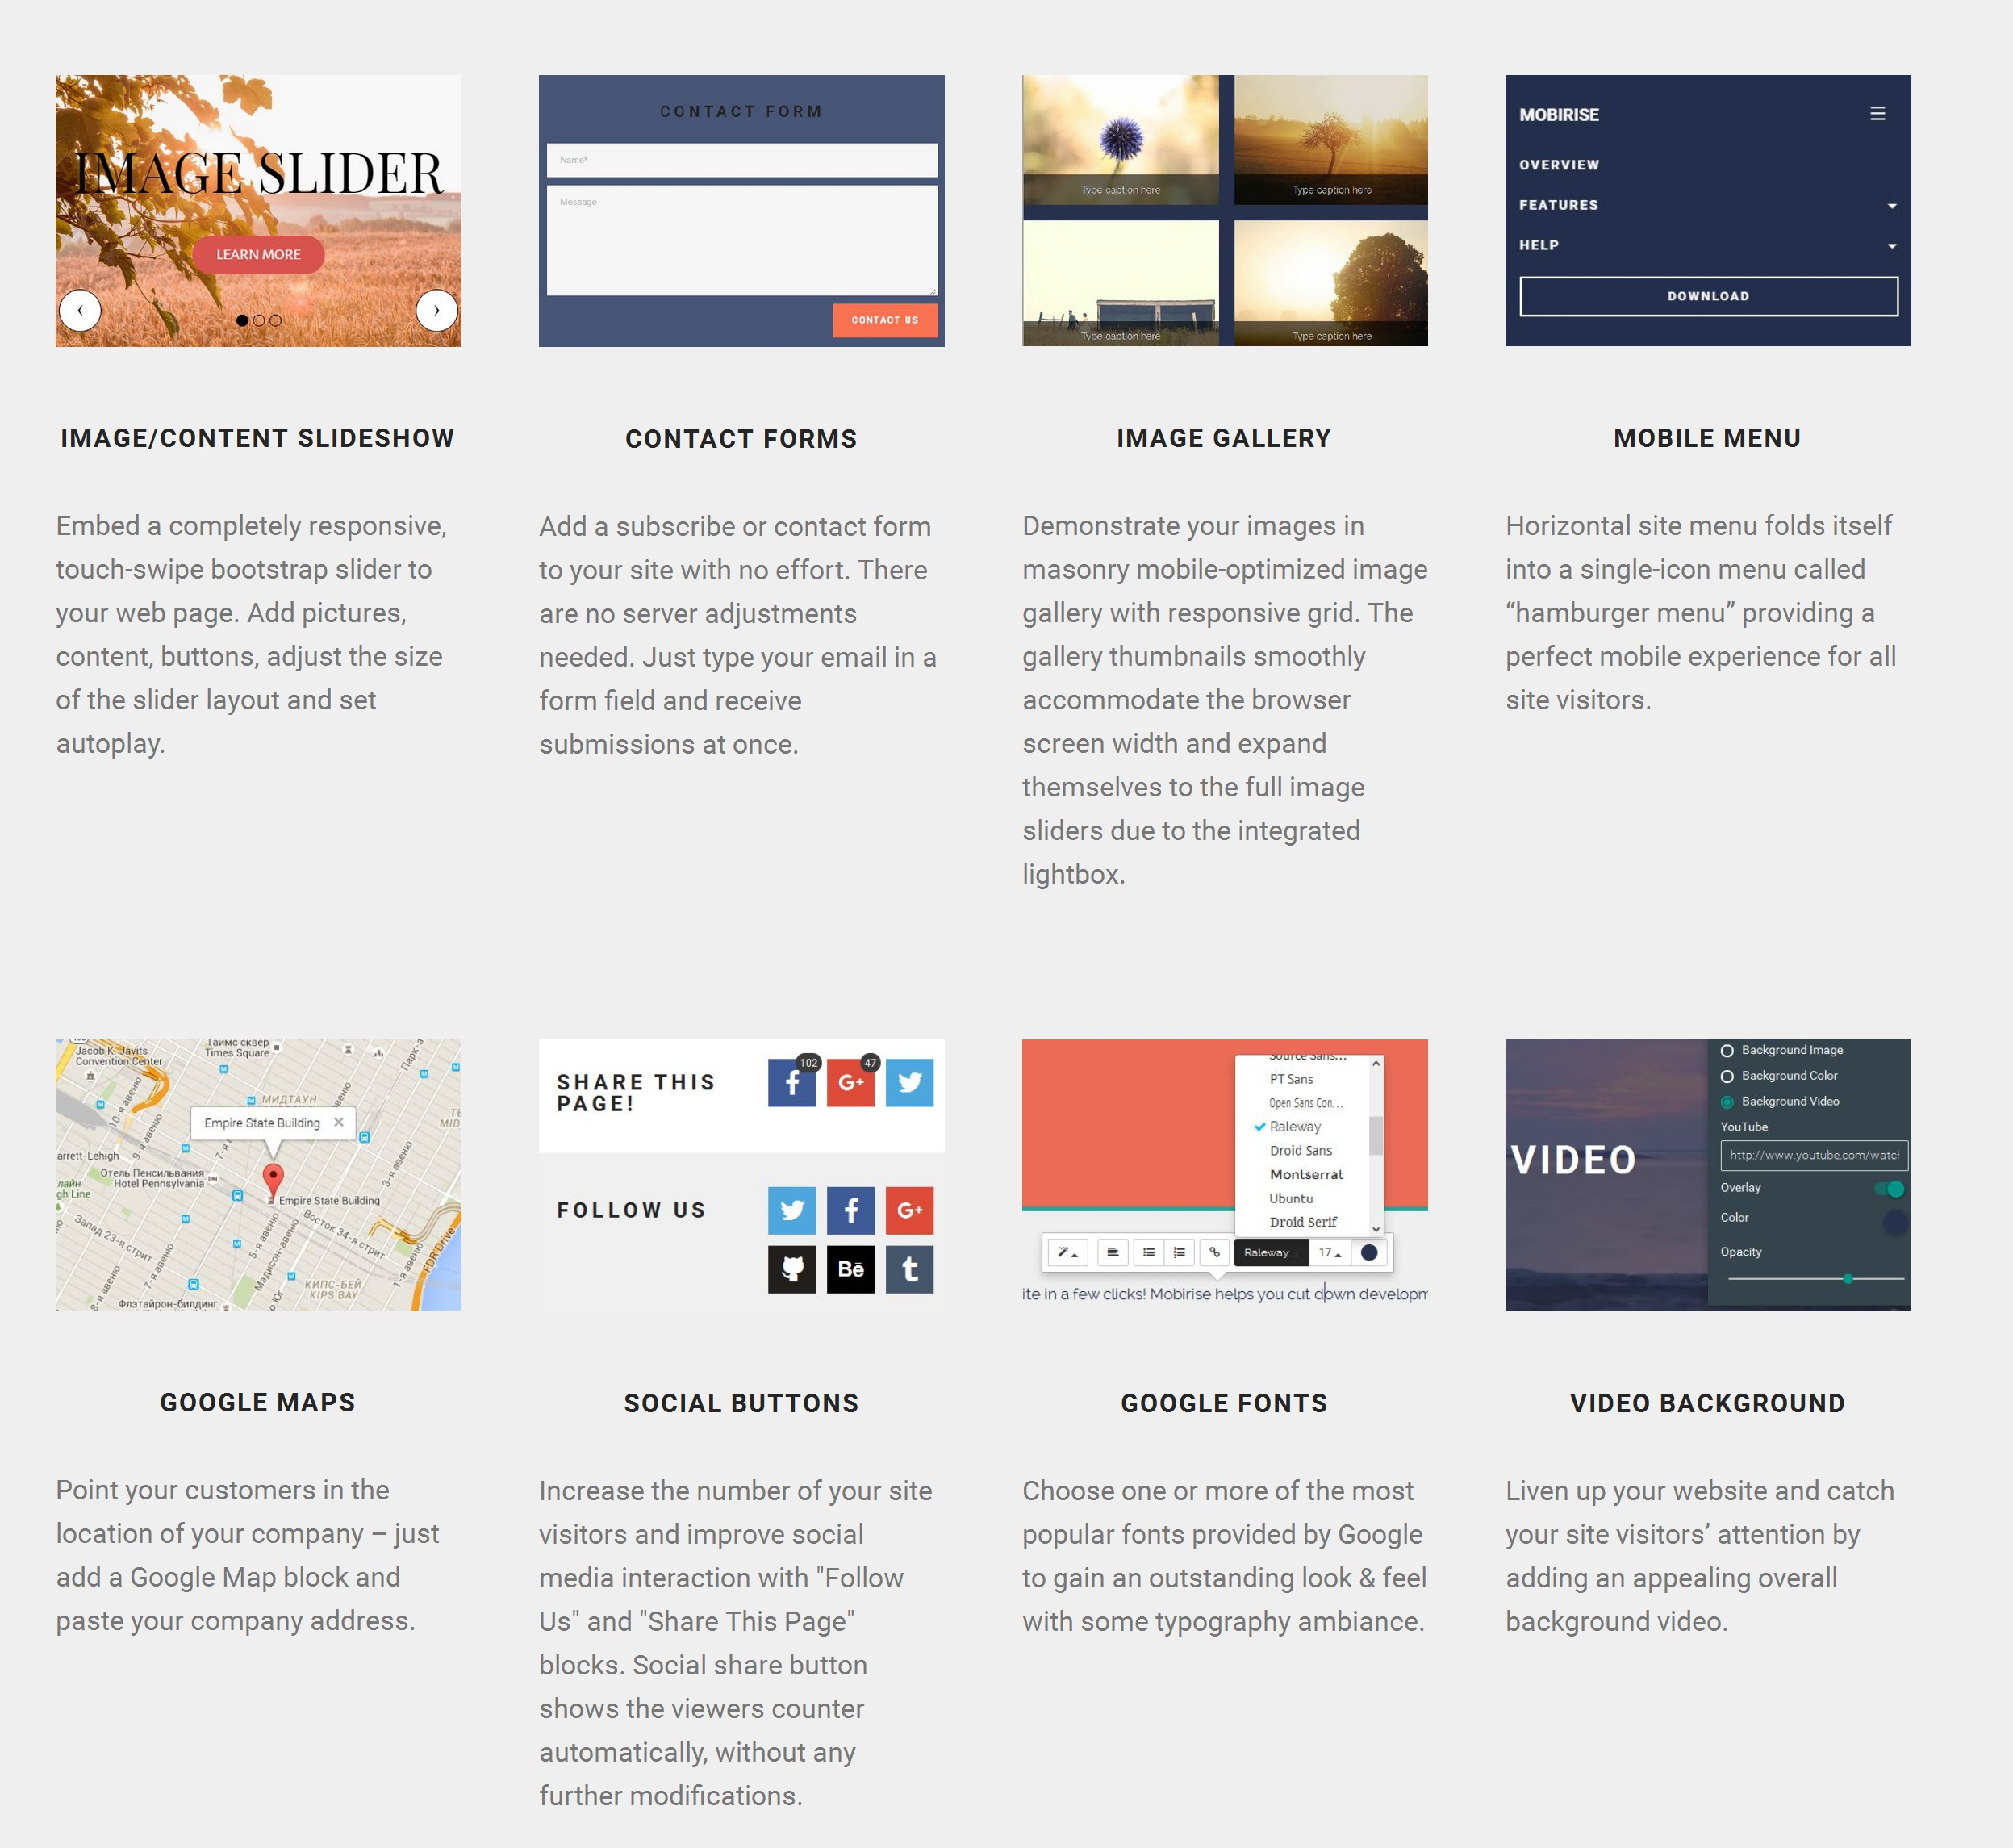 Fast and Simple Website Builder Tool